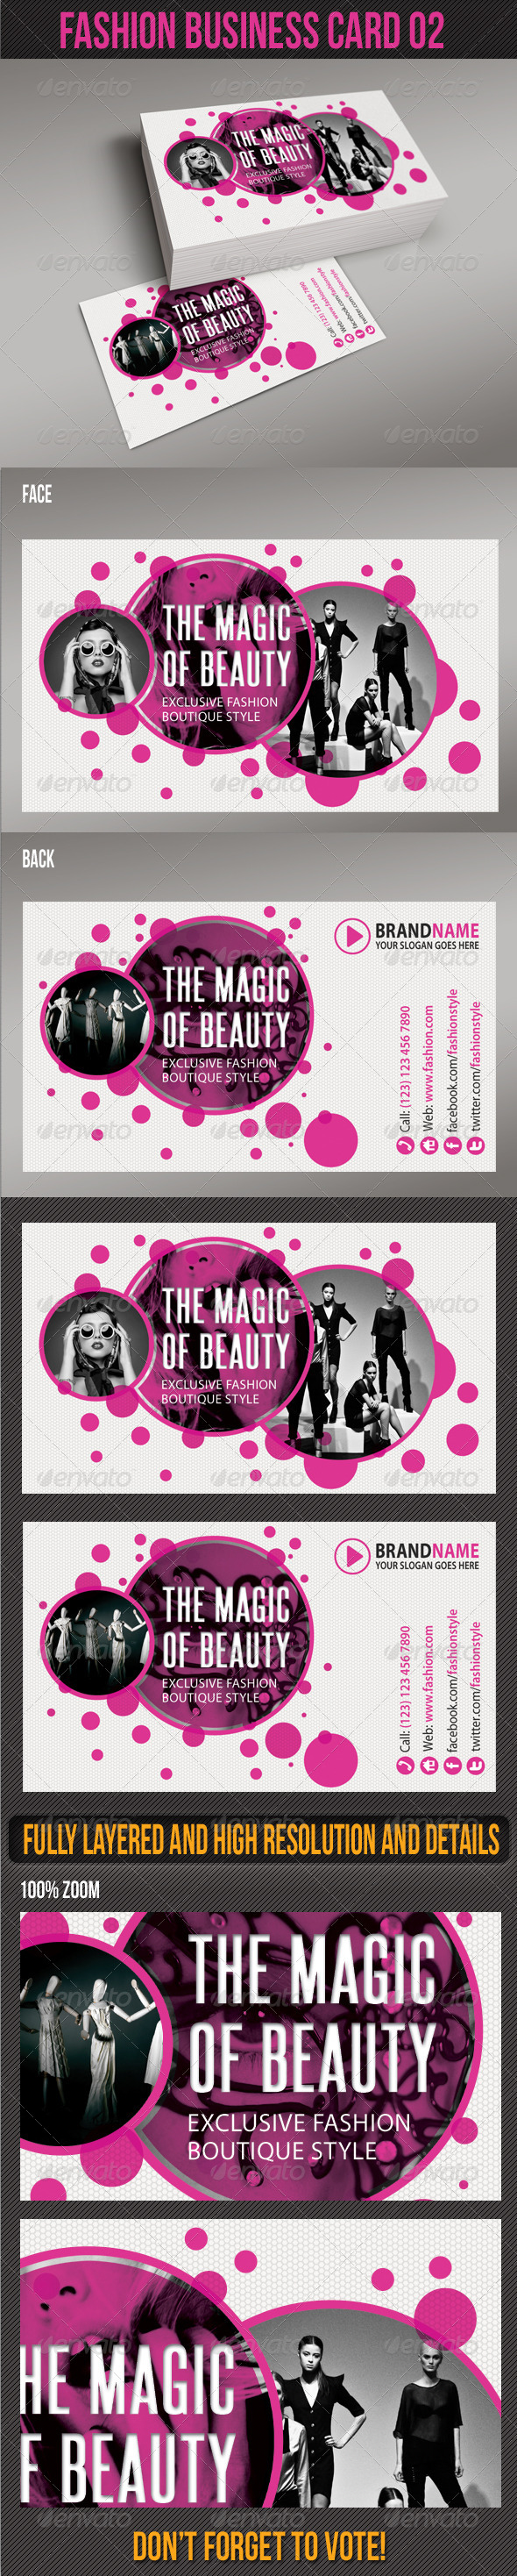 Fashion Business Card 02